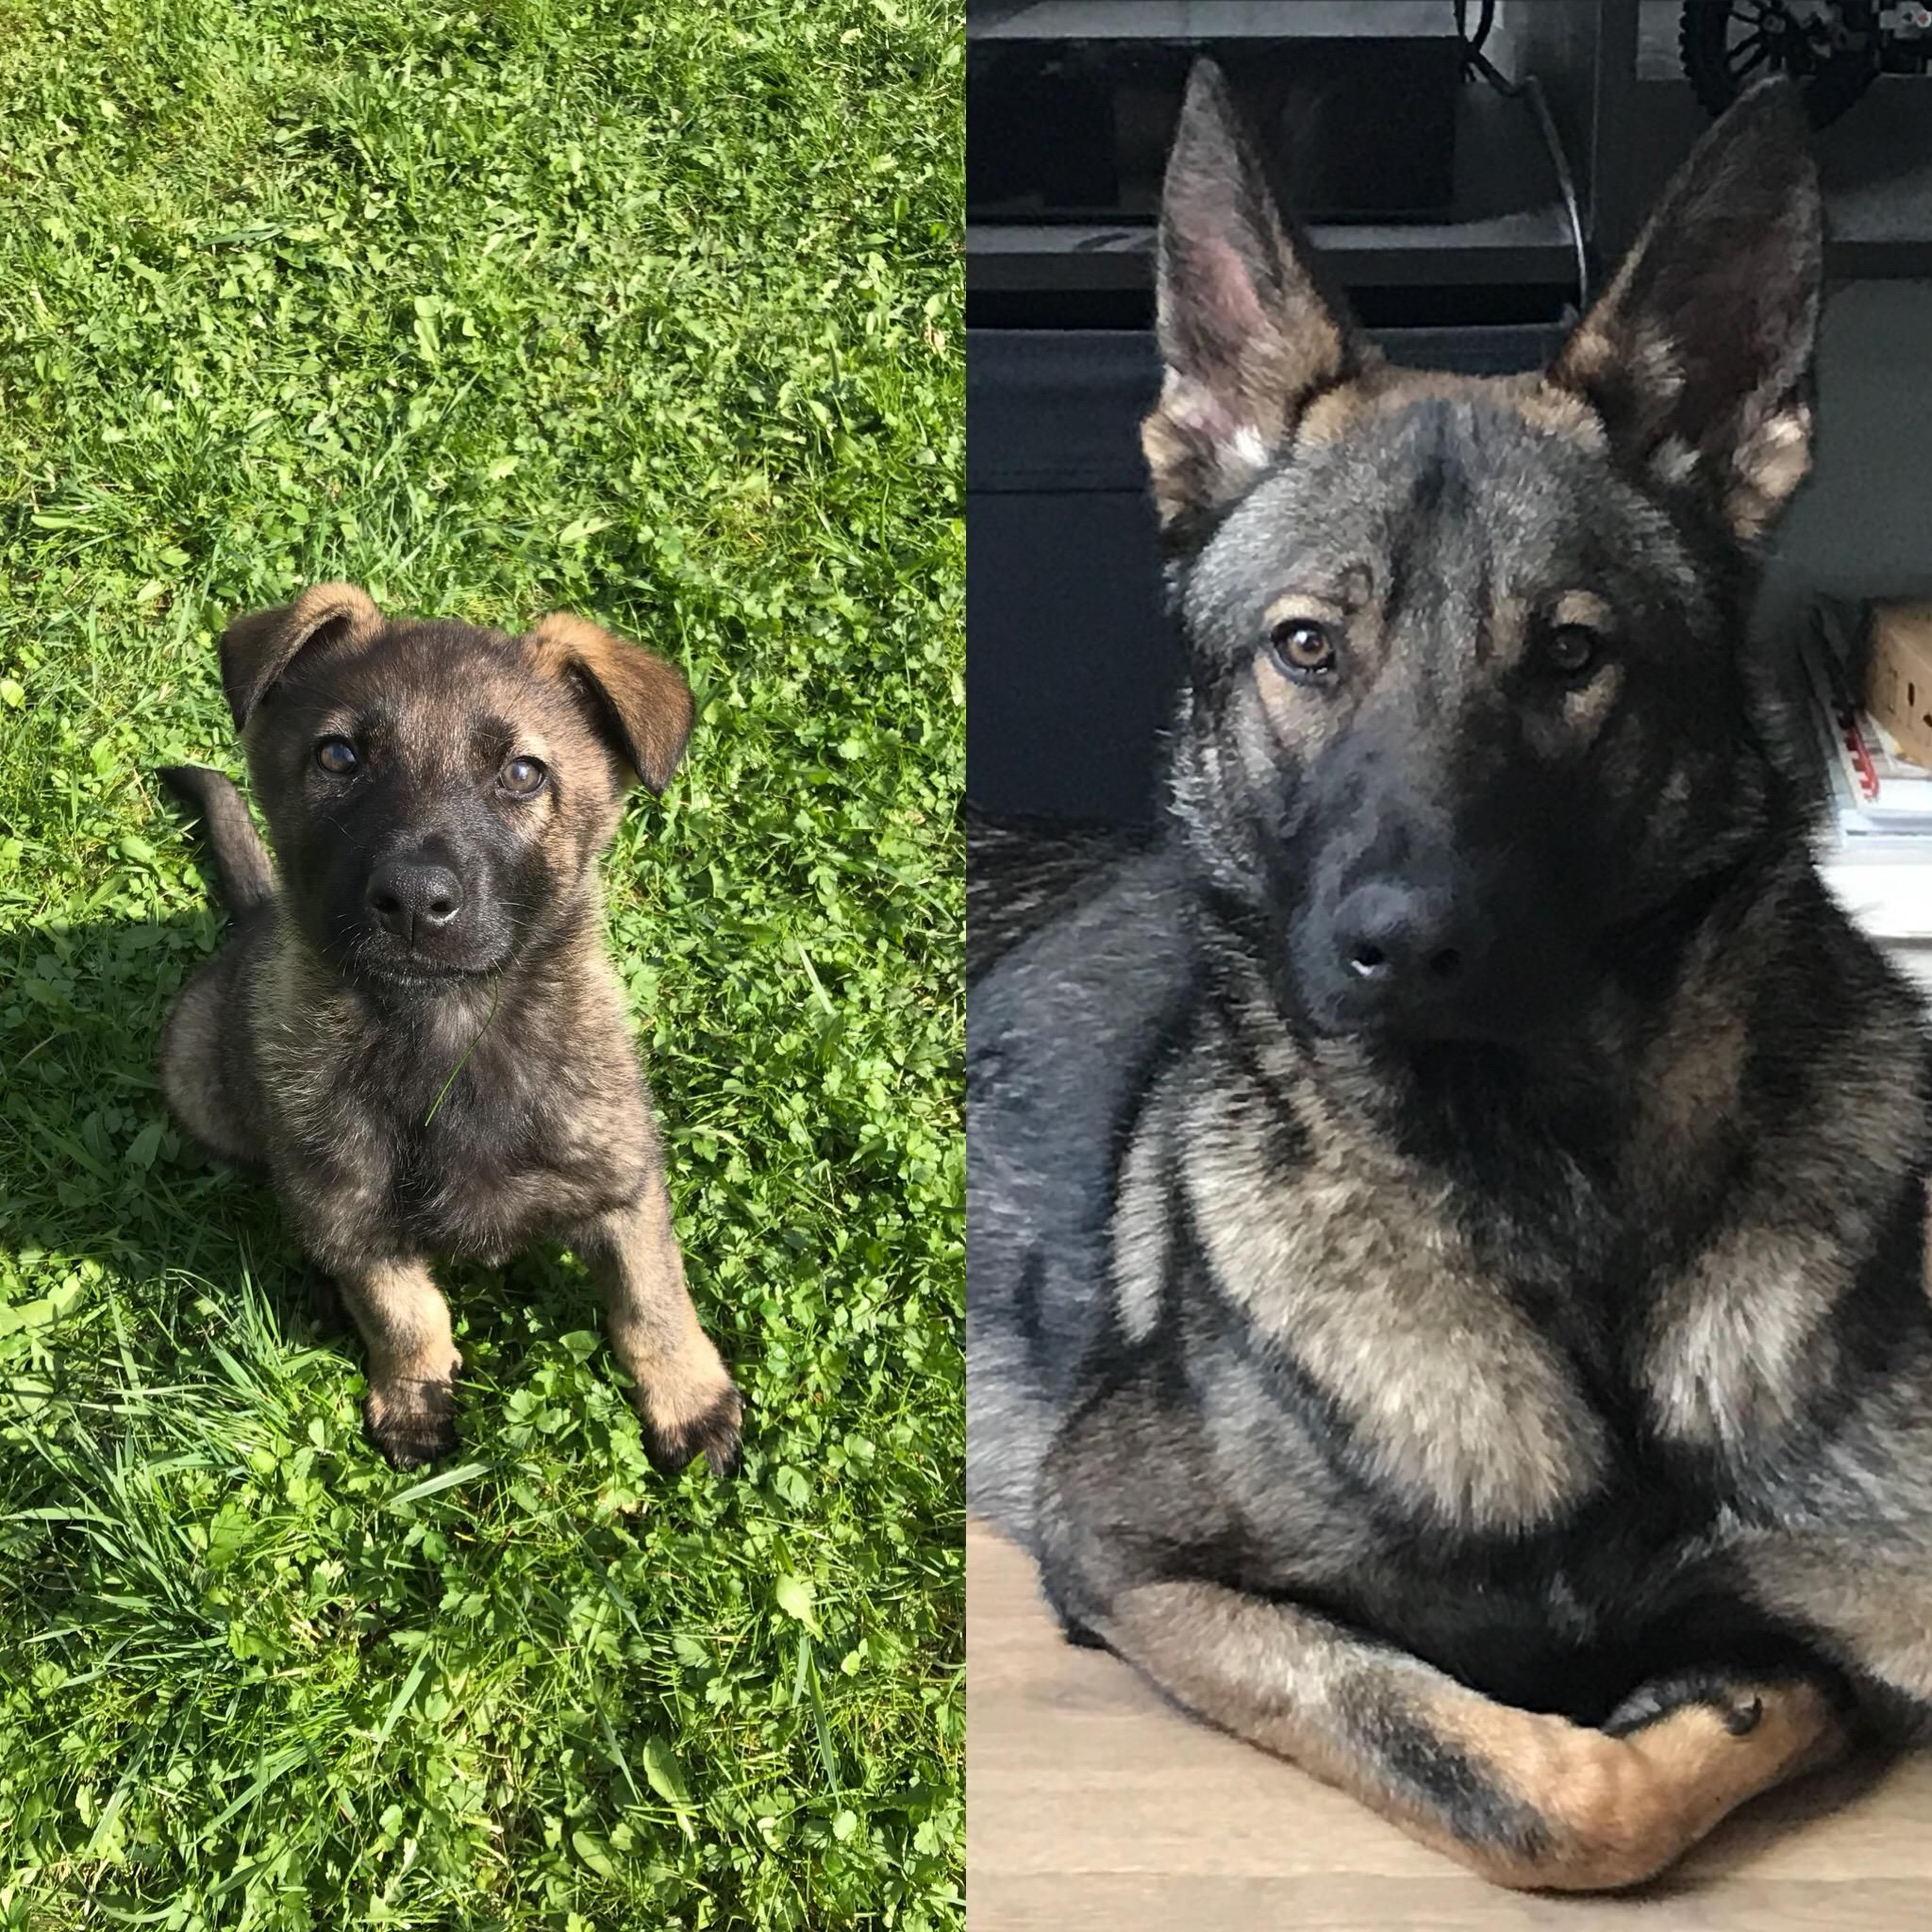 Nachos 8 Weeks Vs 1 Year Working Line Storyful Dog Best Pinterest Dog Profile In 2020 German Shepherd Photography German Shepherd Dogs German Shepherd Puppies